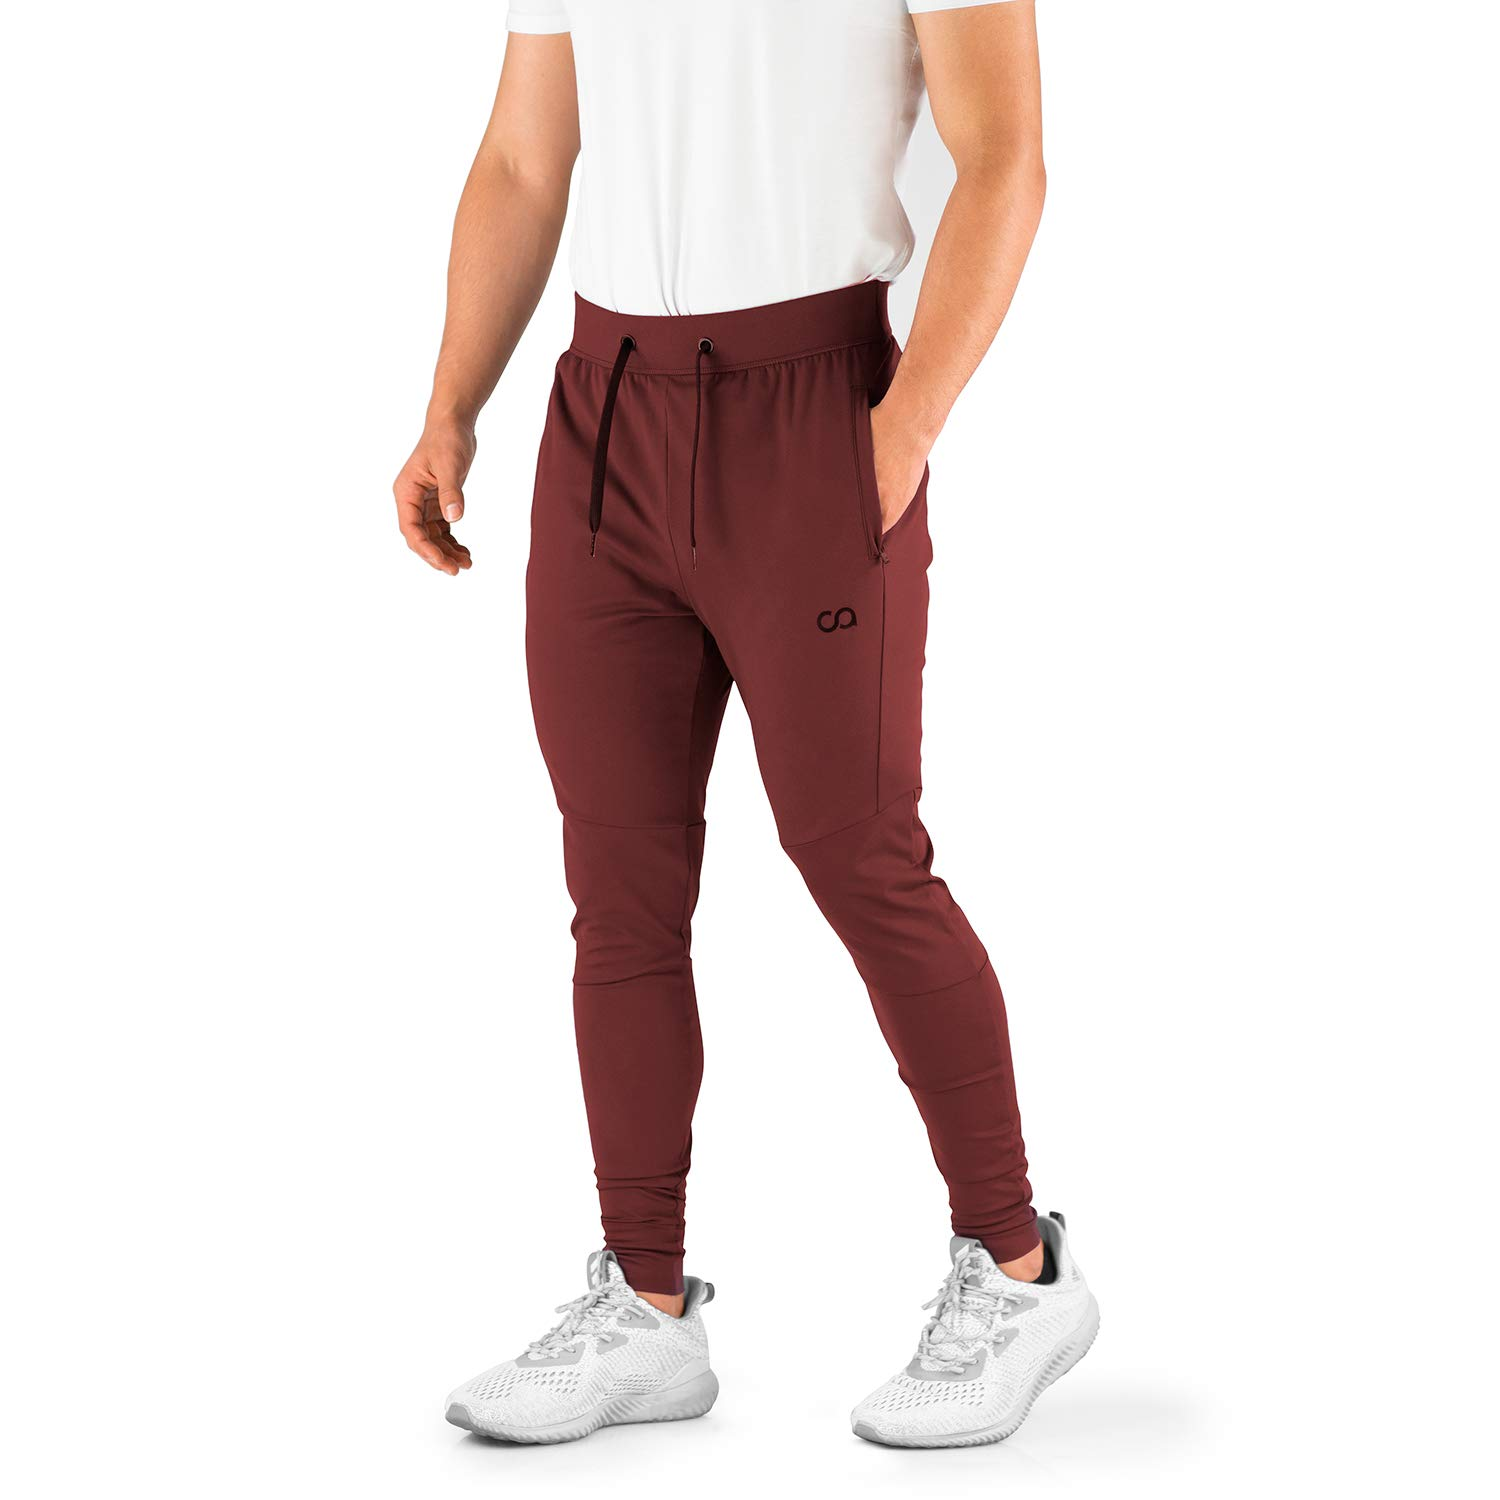 Contour Athletics Men's Joggers (HydraFit) Track Pants Sports Workout Sweatpants with Zipper and Back Pockets CA0003-SM Maroon